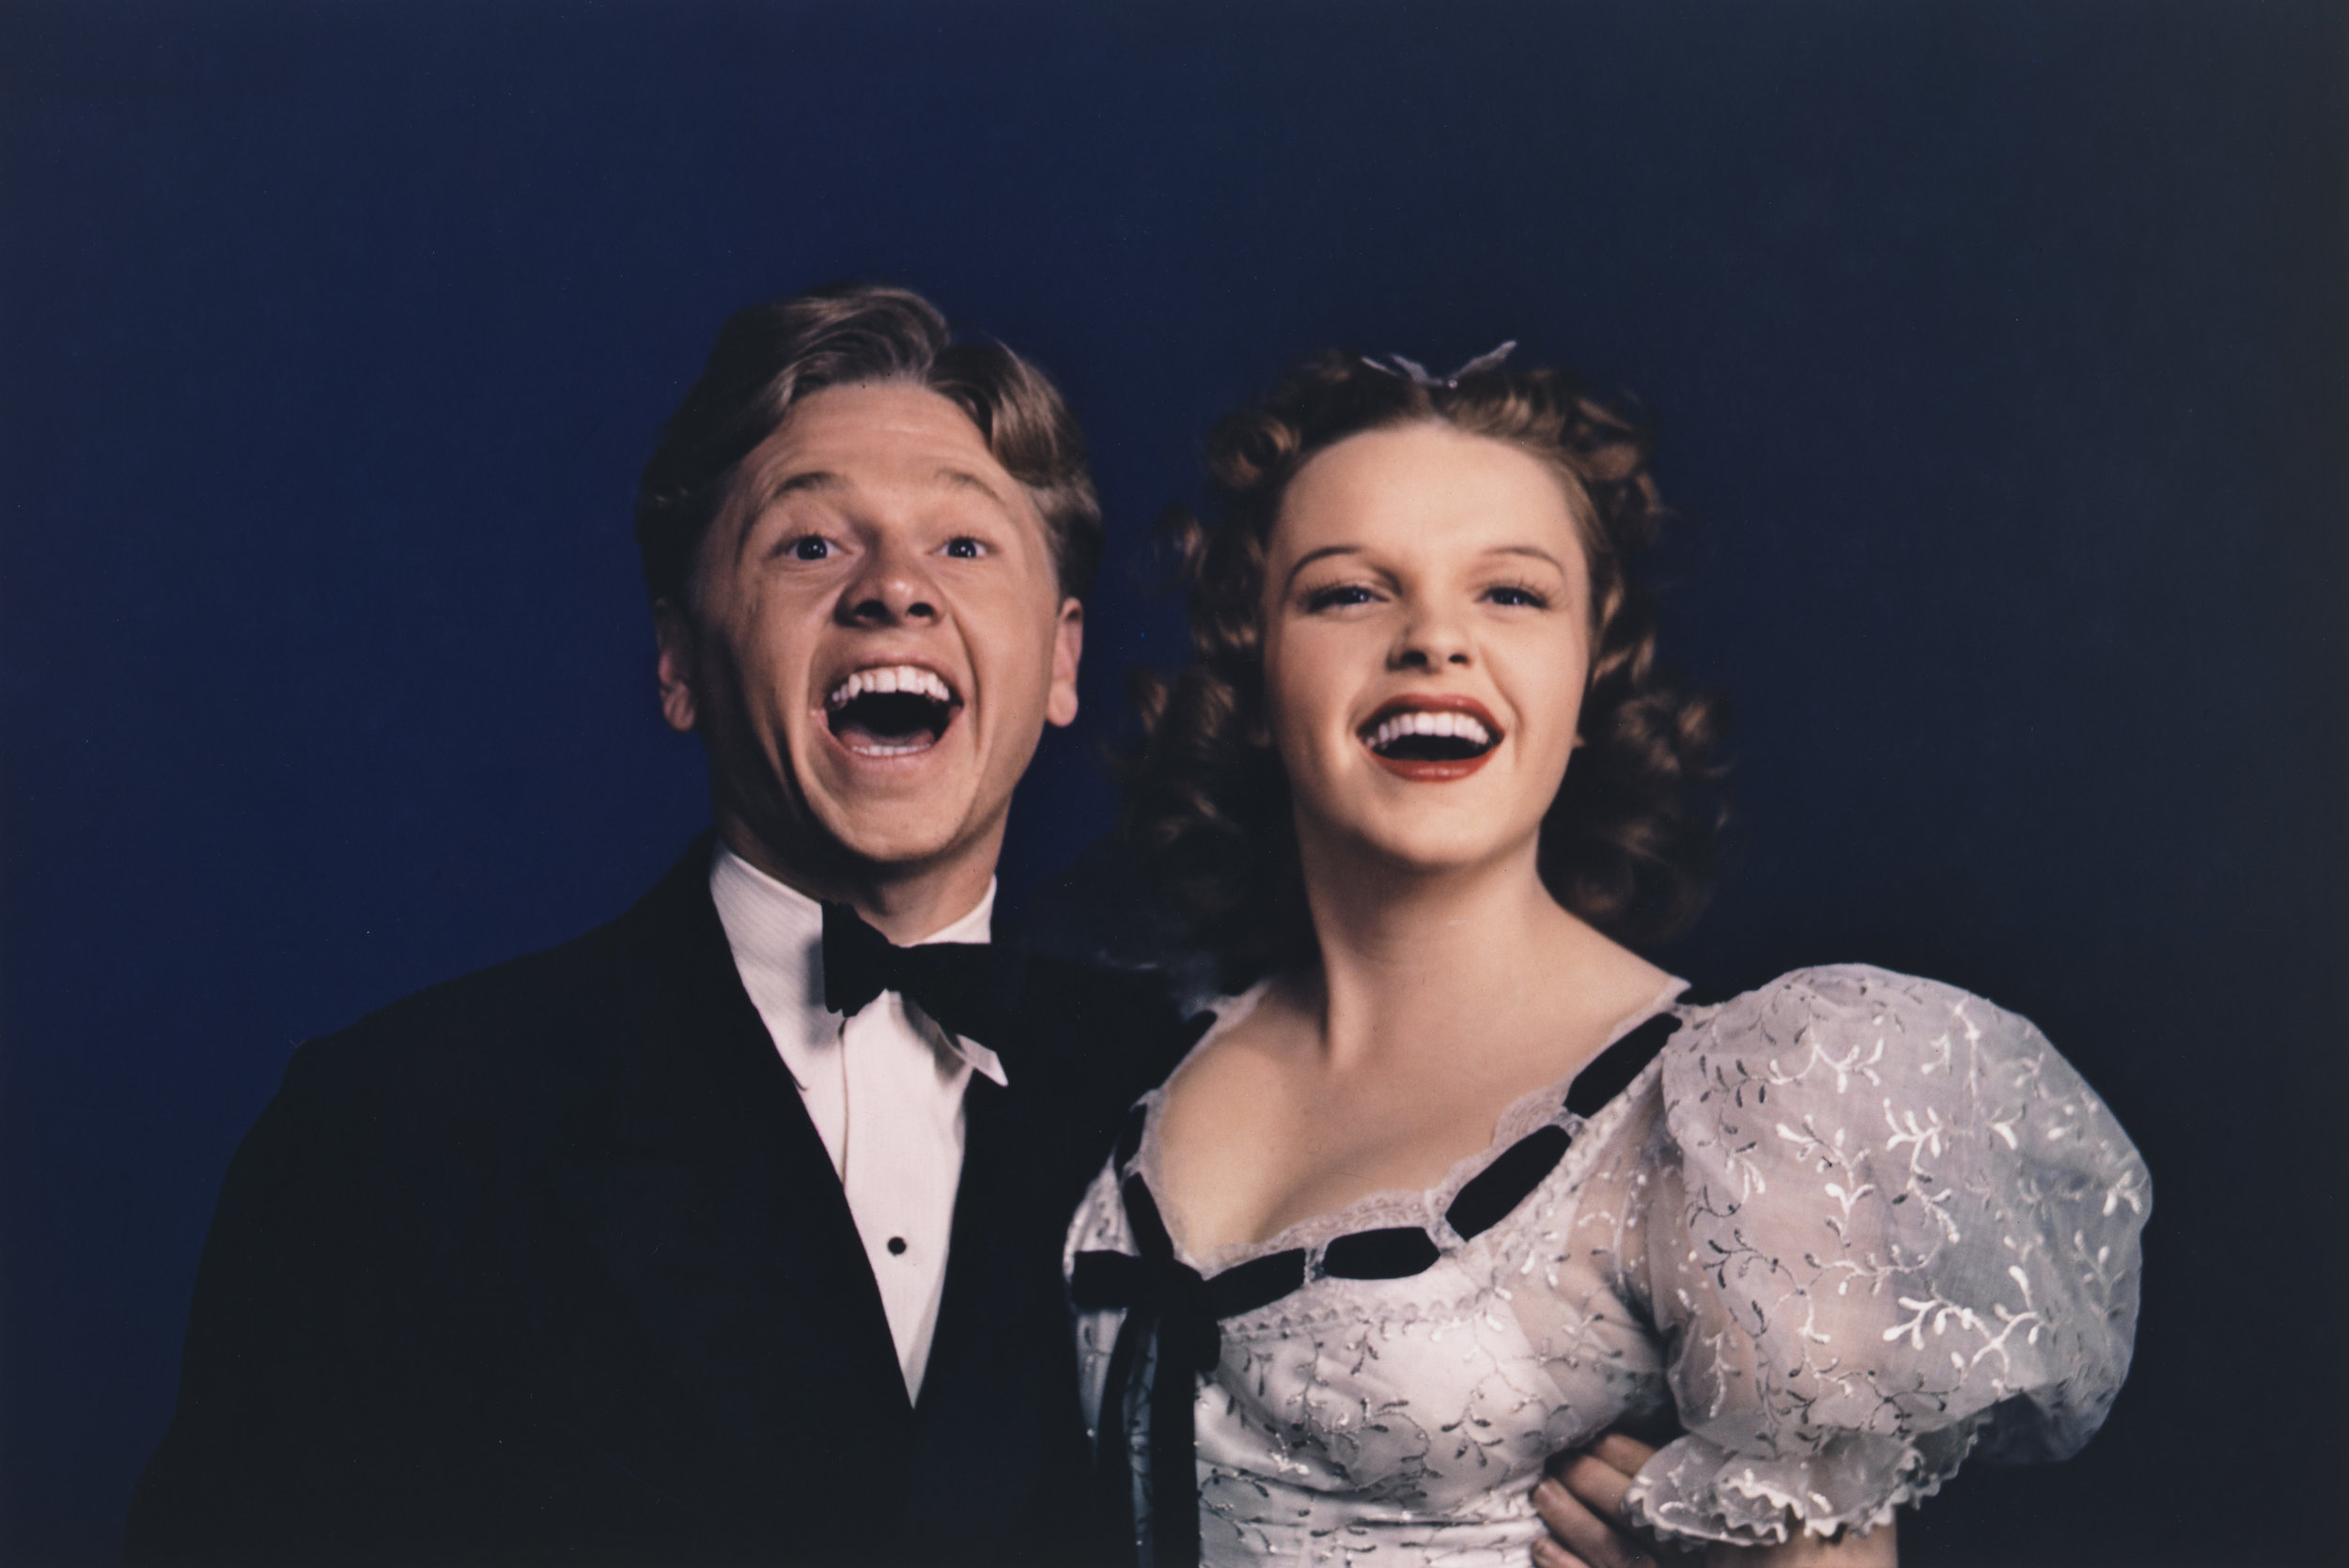 Harold Edgerton (1903-1990),  Mickey Rooney and Judy Garland at MGM Studios , 1940. Edition 16/22. Chromogenic print: sheet, 15 7/8 × 19 13/16 in. (40.3 × 50.3 cm); image 12 1/4 × 18 1/4 in. (31.1 × 46.4 cm). Whitney Museum of American Art, New York; gift of The Harold and Esther Edgerton Family Foundation 96.117.58. © 2010 MIT. Courtesy of MIT Museum